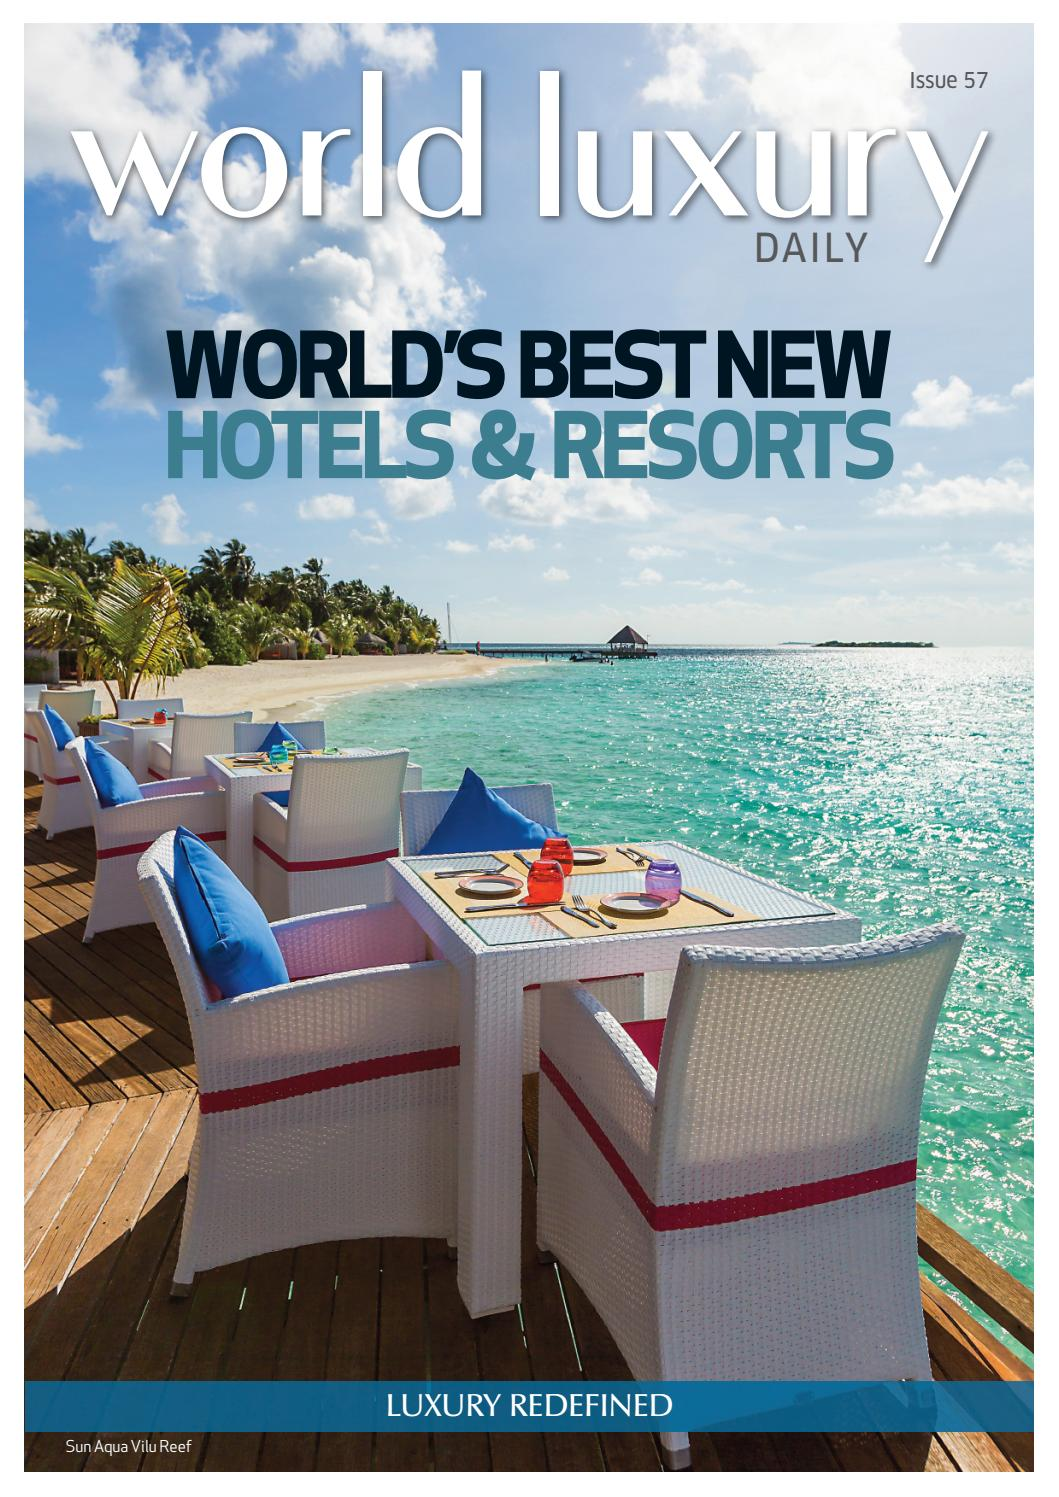 World Luxury Daily Issue 57 World S Best New Hotels Resorts